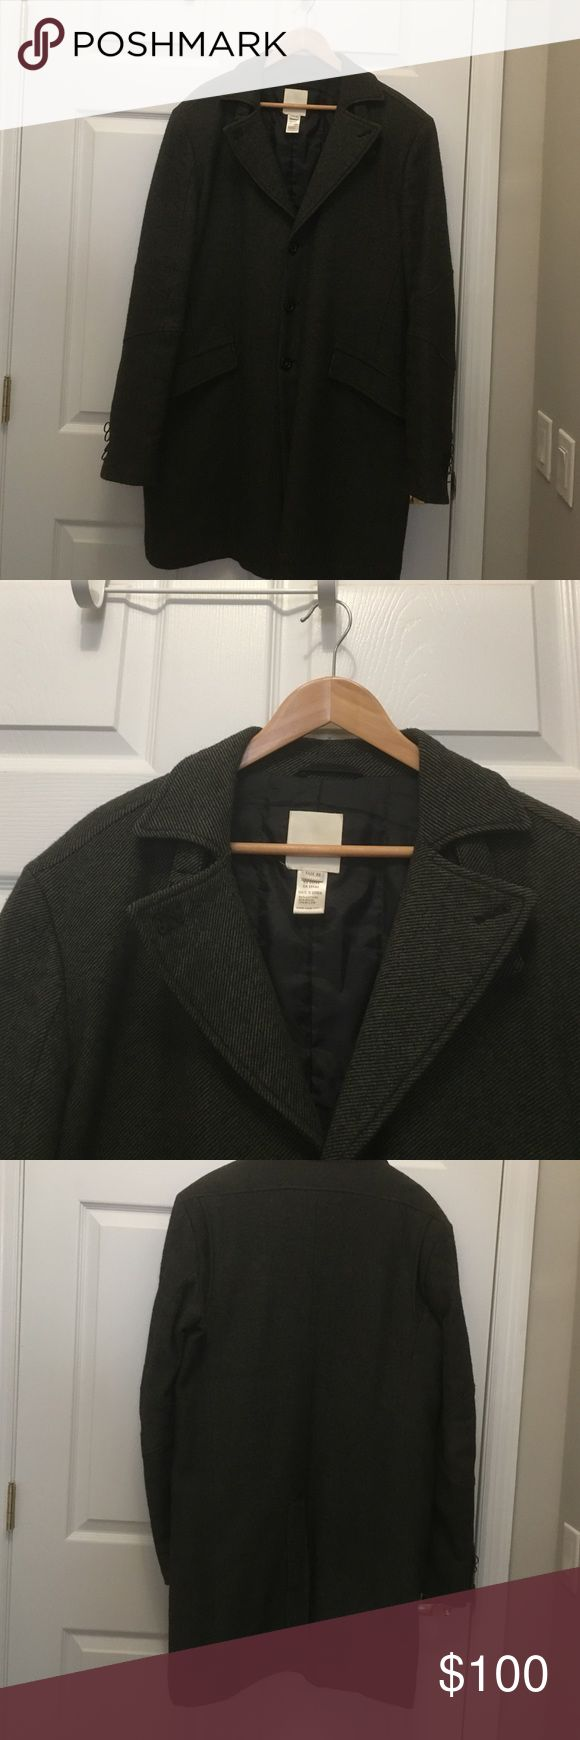 Excellent condition Diesel coat Beautiful so stylish  50% cotton 40% wool 10%nylon , mostly elegant stylish coat size Xl with a lot hi end detailing , color dark , between dark green and black. With any items for men you get a present 🎁 Diesel Jackets & Coats Pea Coats